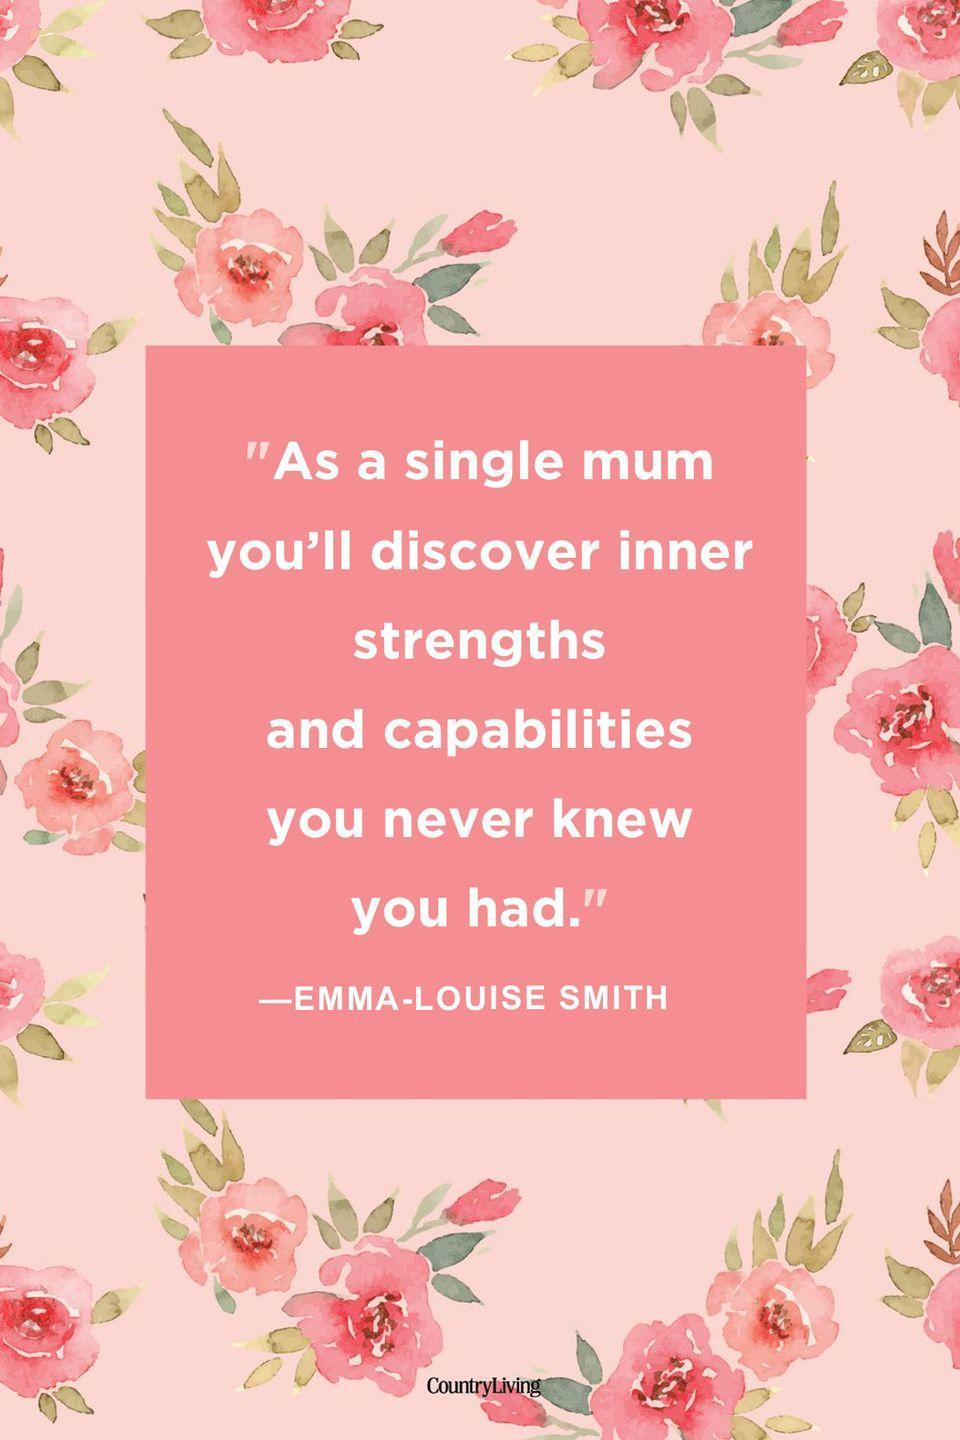 "<p>""As a single mum you'll discover inner strengths and capabilities you never knew you had.""</p>"